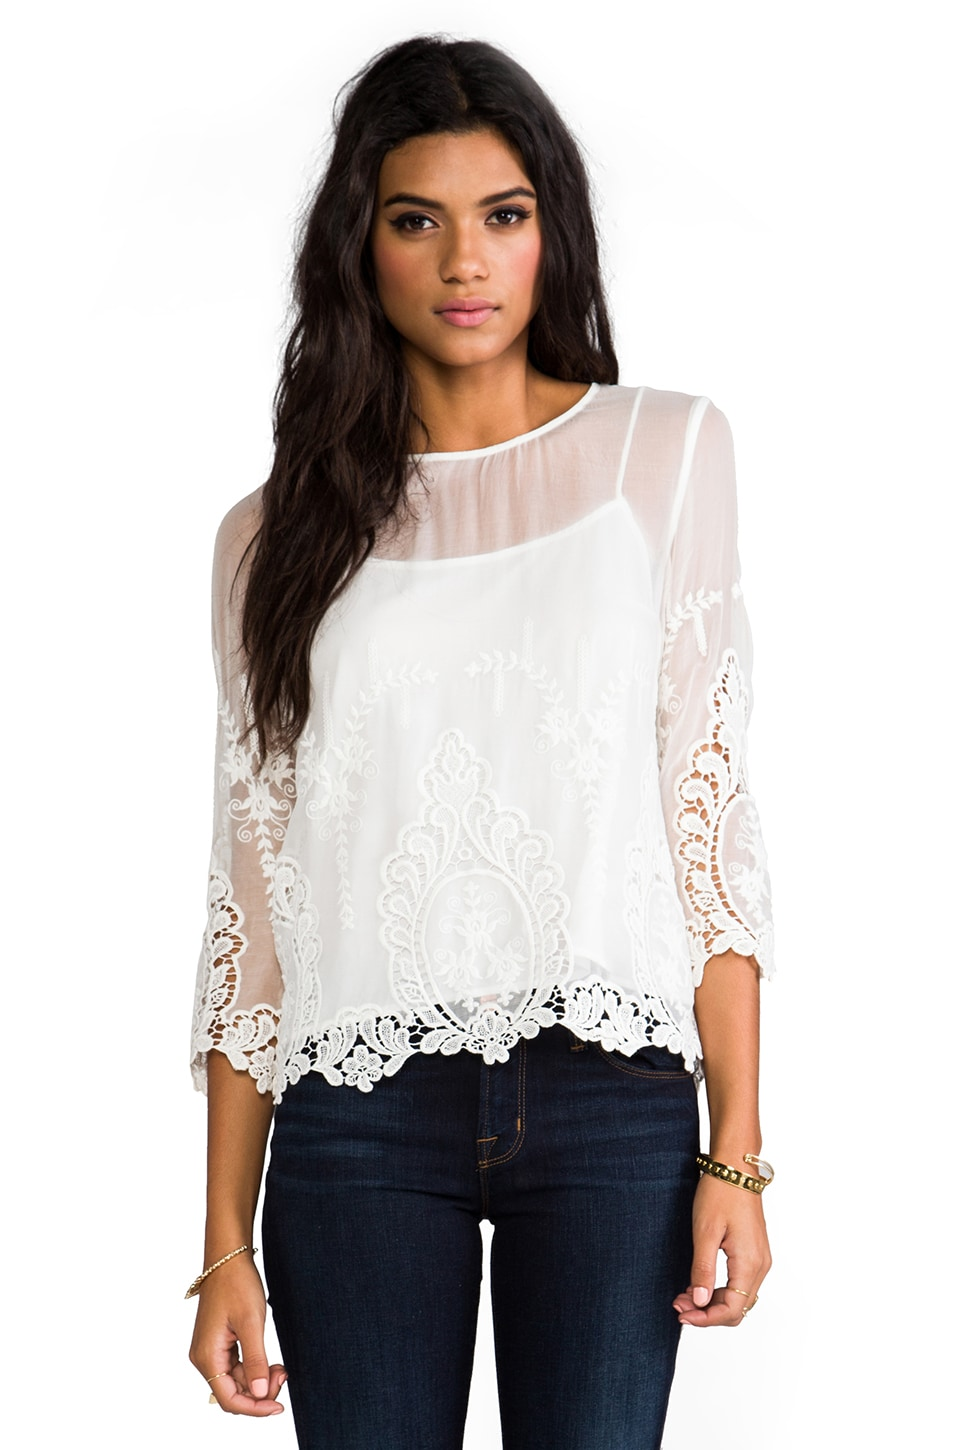 Dolce Vita Deidra Top in White